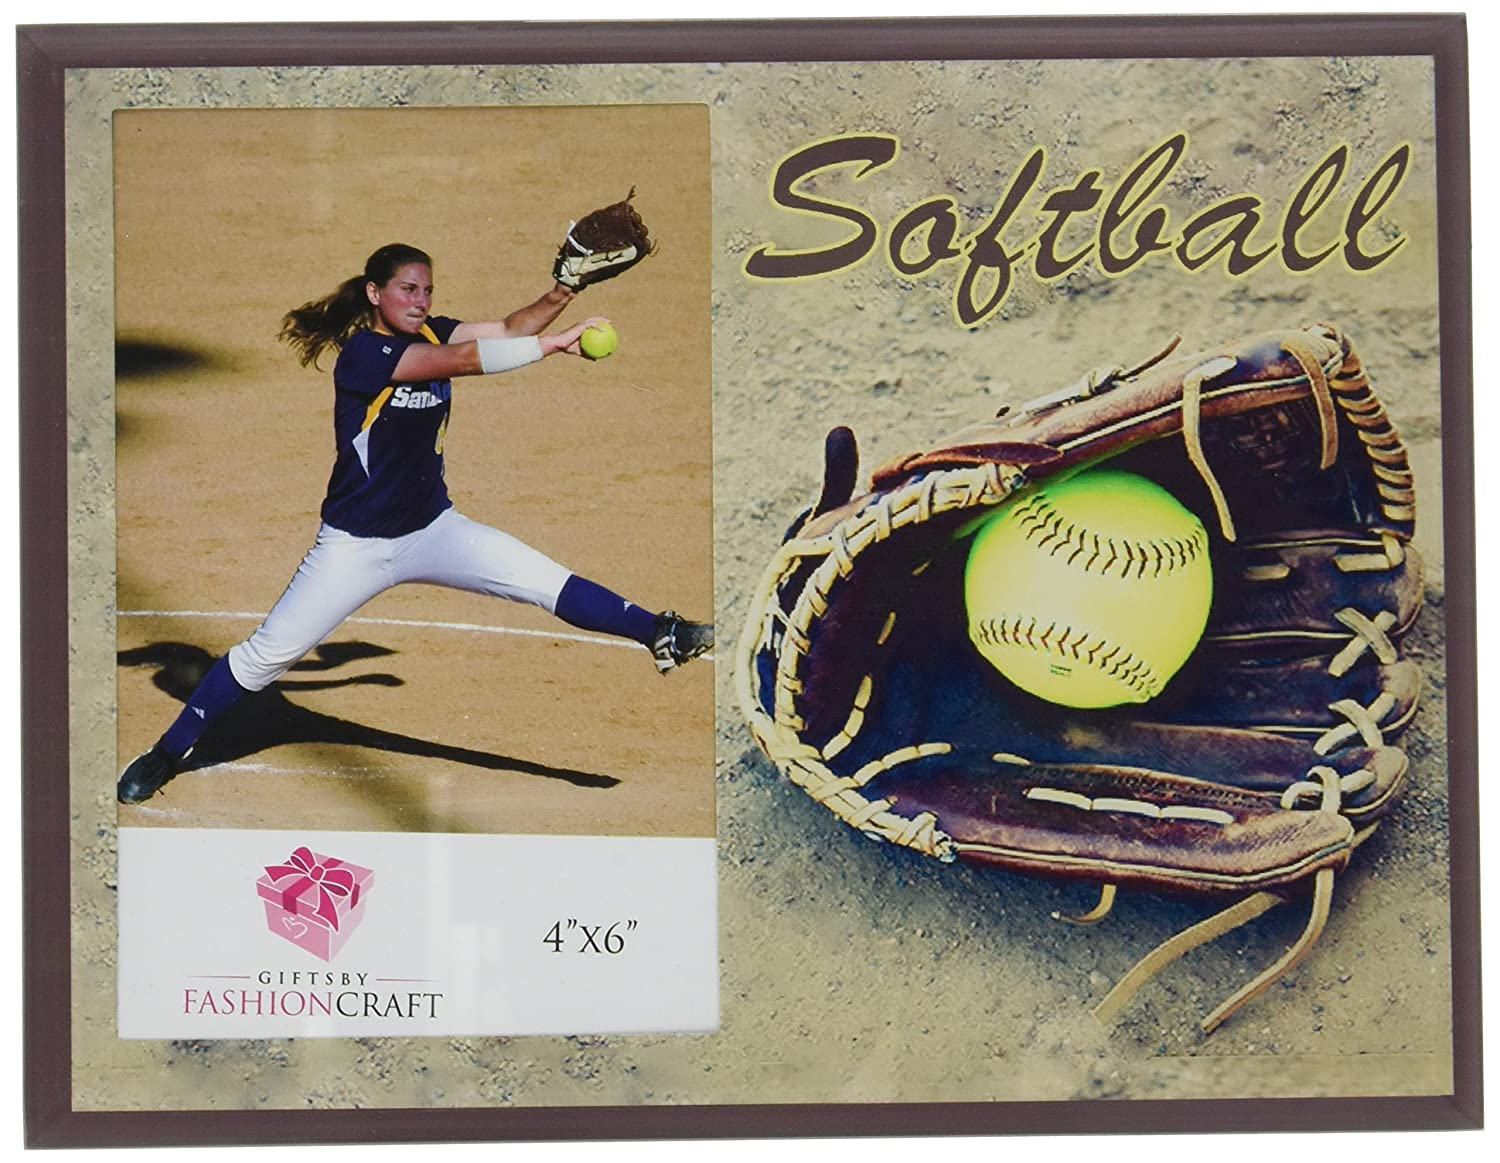 Amazon.com - Fashioncraft Softball Themed Frames from Gifts -